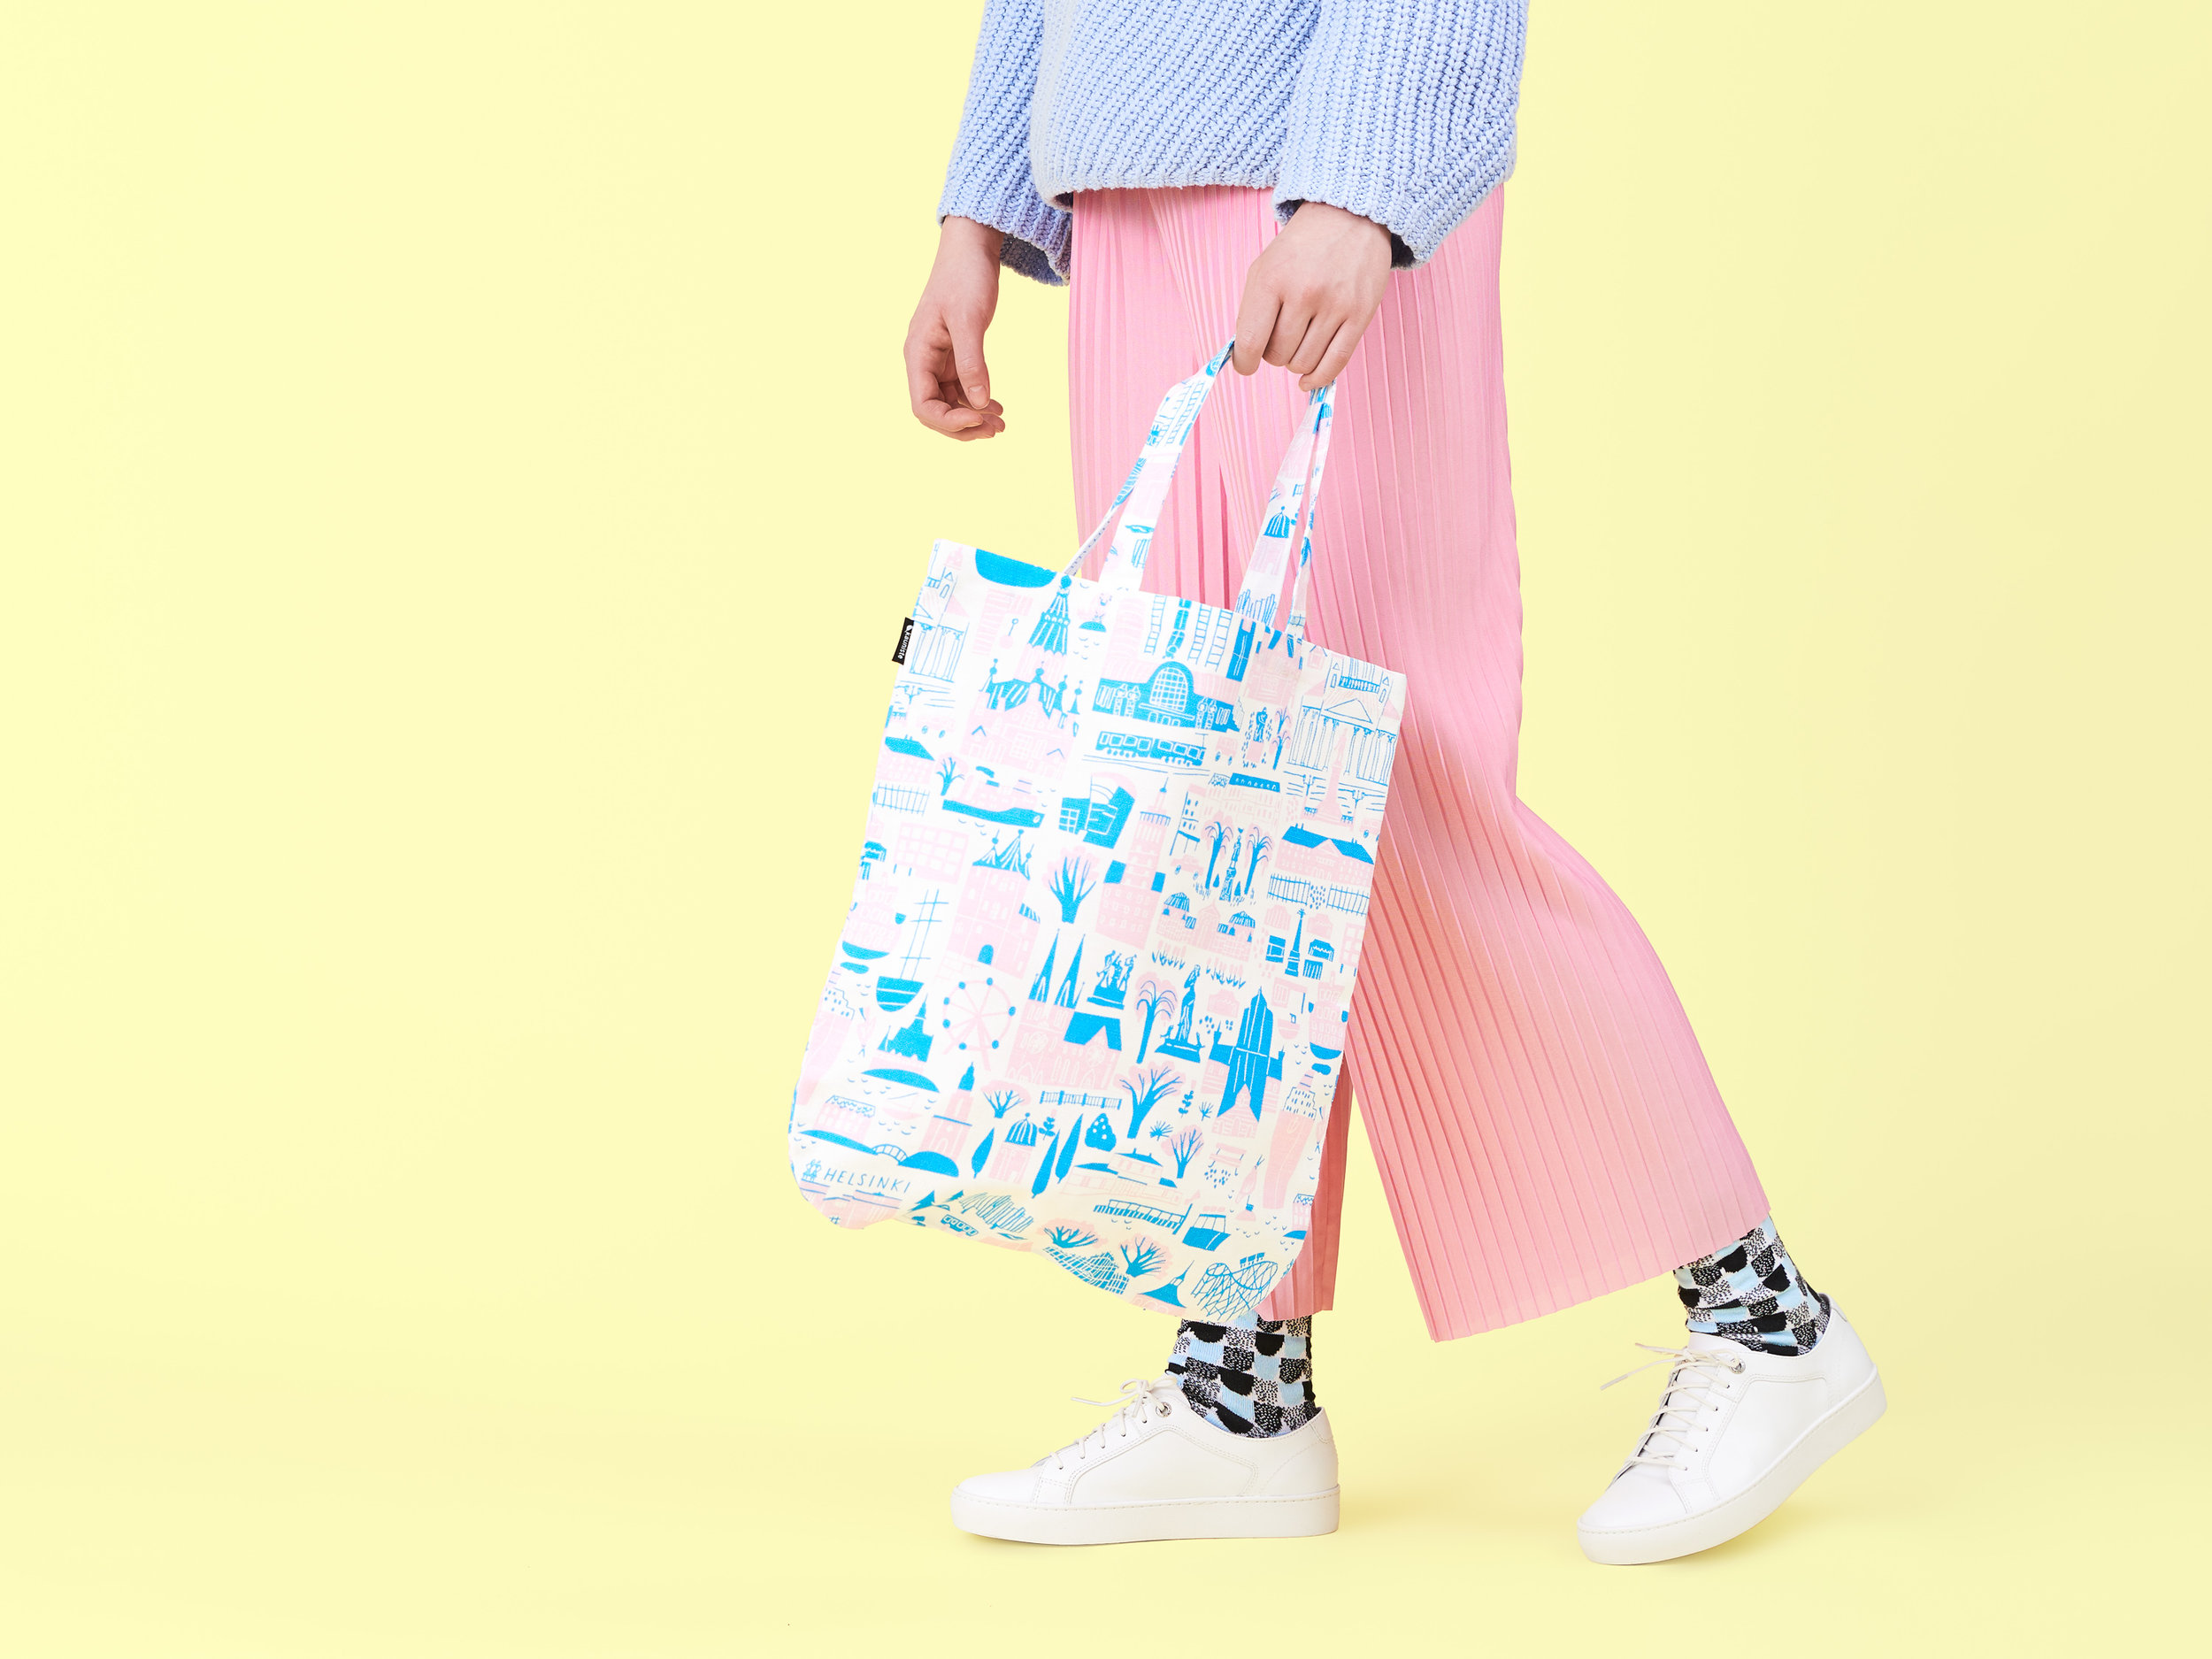 Helsinki bag - It's our favorite tote bag with the round corners & extra stitching on the handles to make sure it's durable.